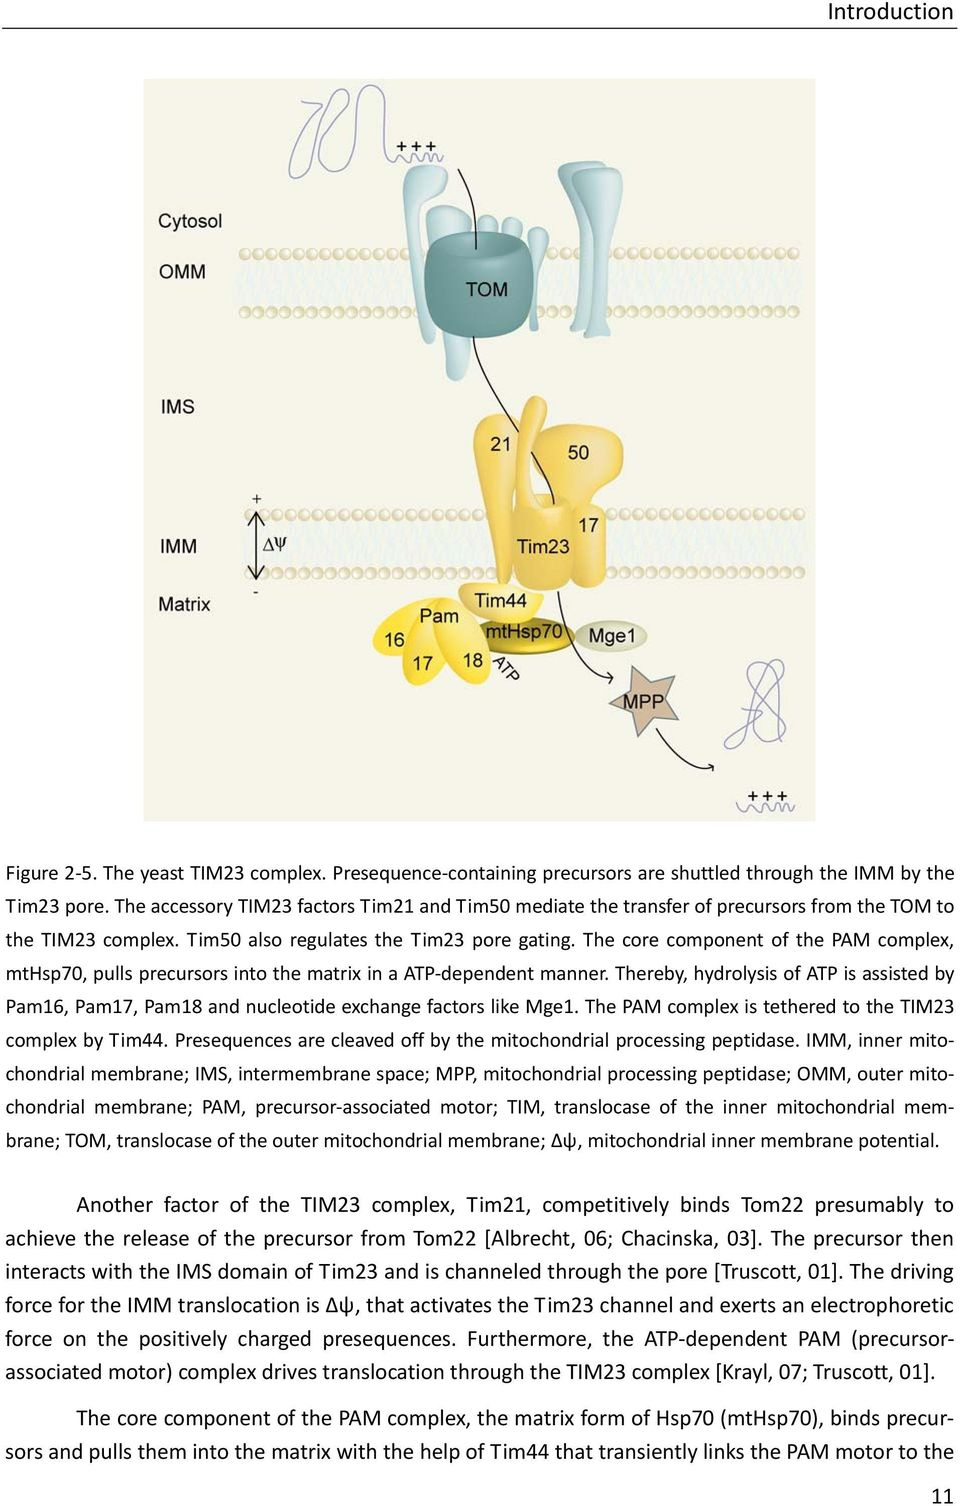 The core component of the PAM complex, mthsp70, pulls precursors into the matrix in a ATP dependent manner.